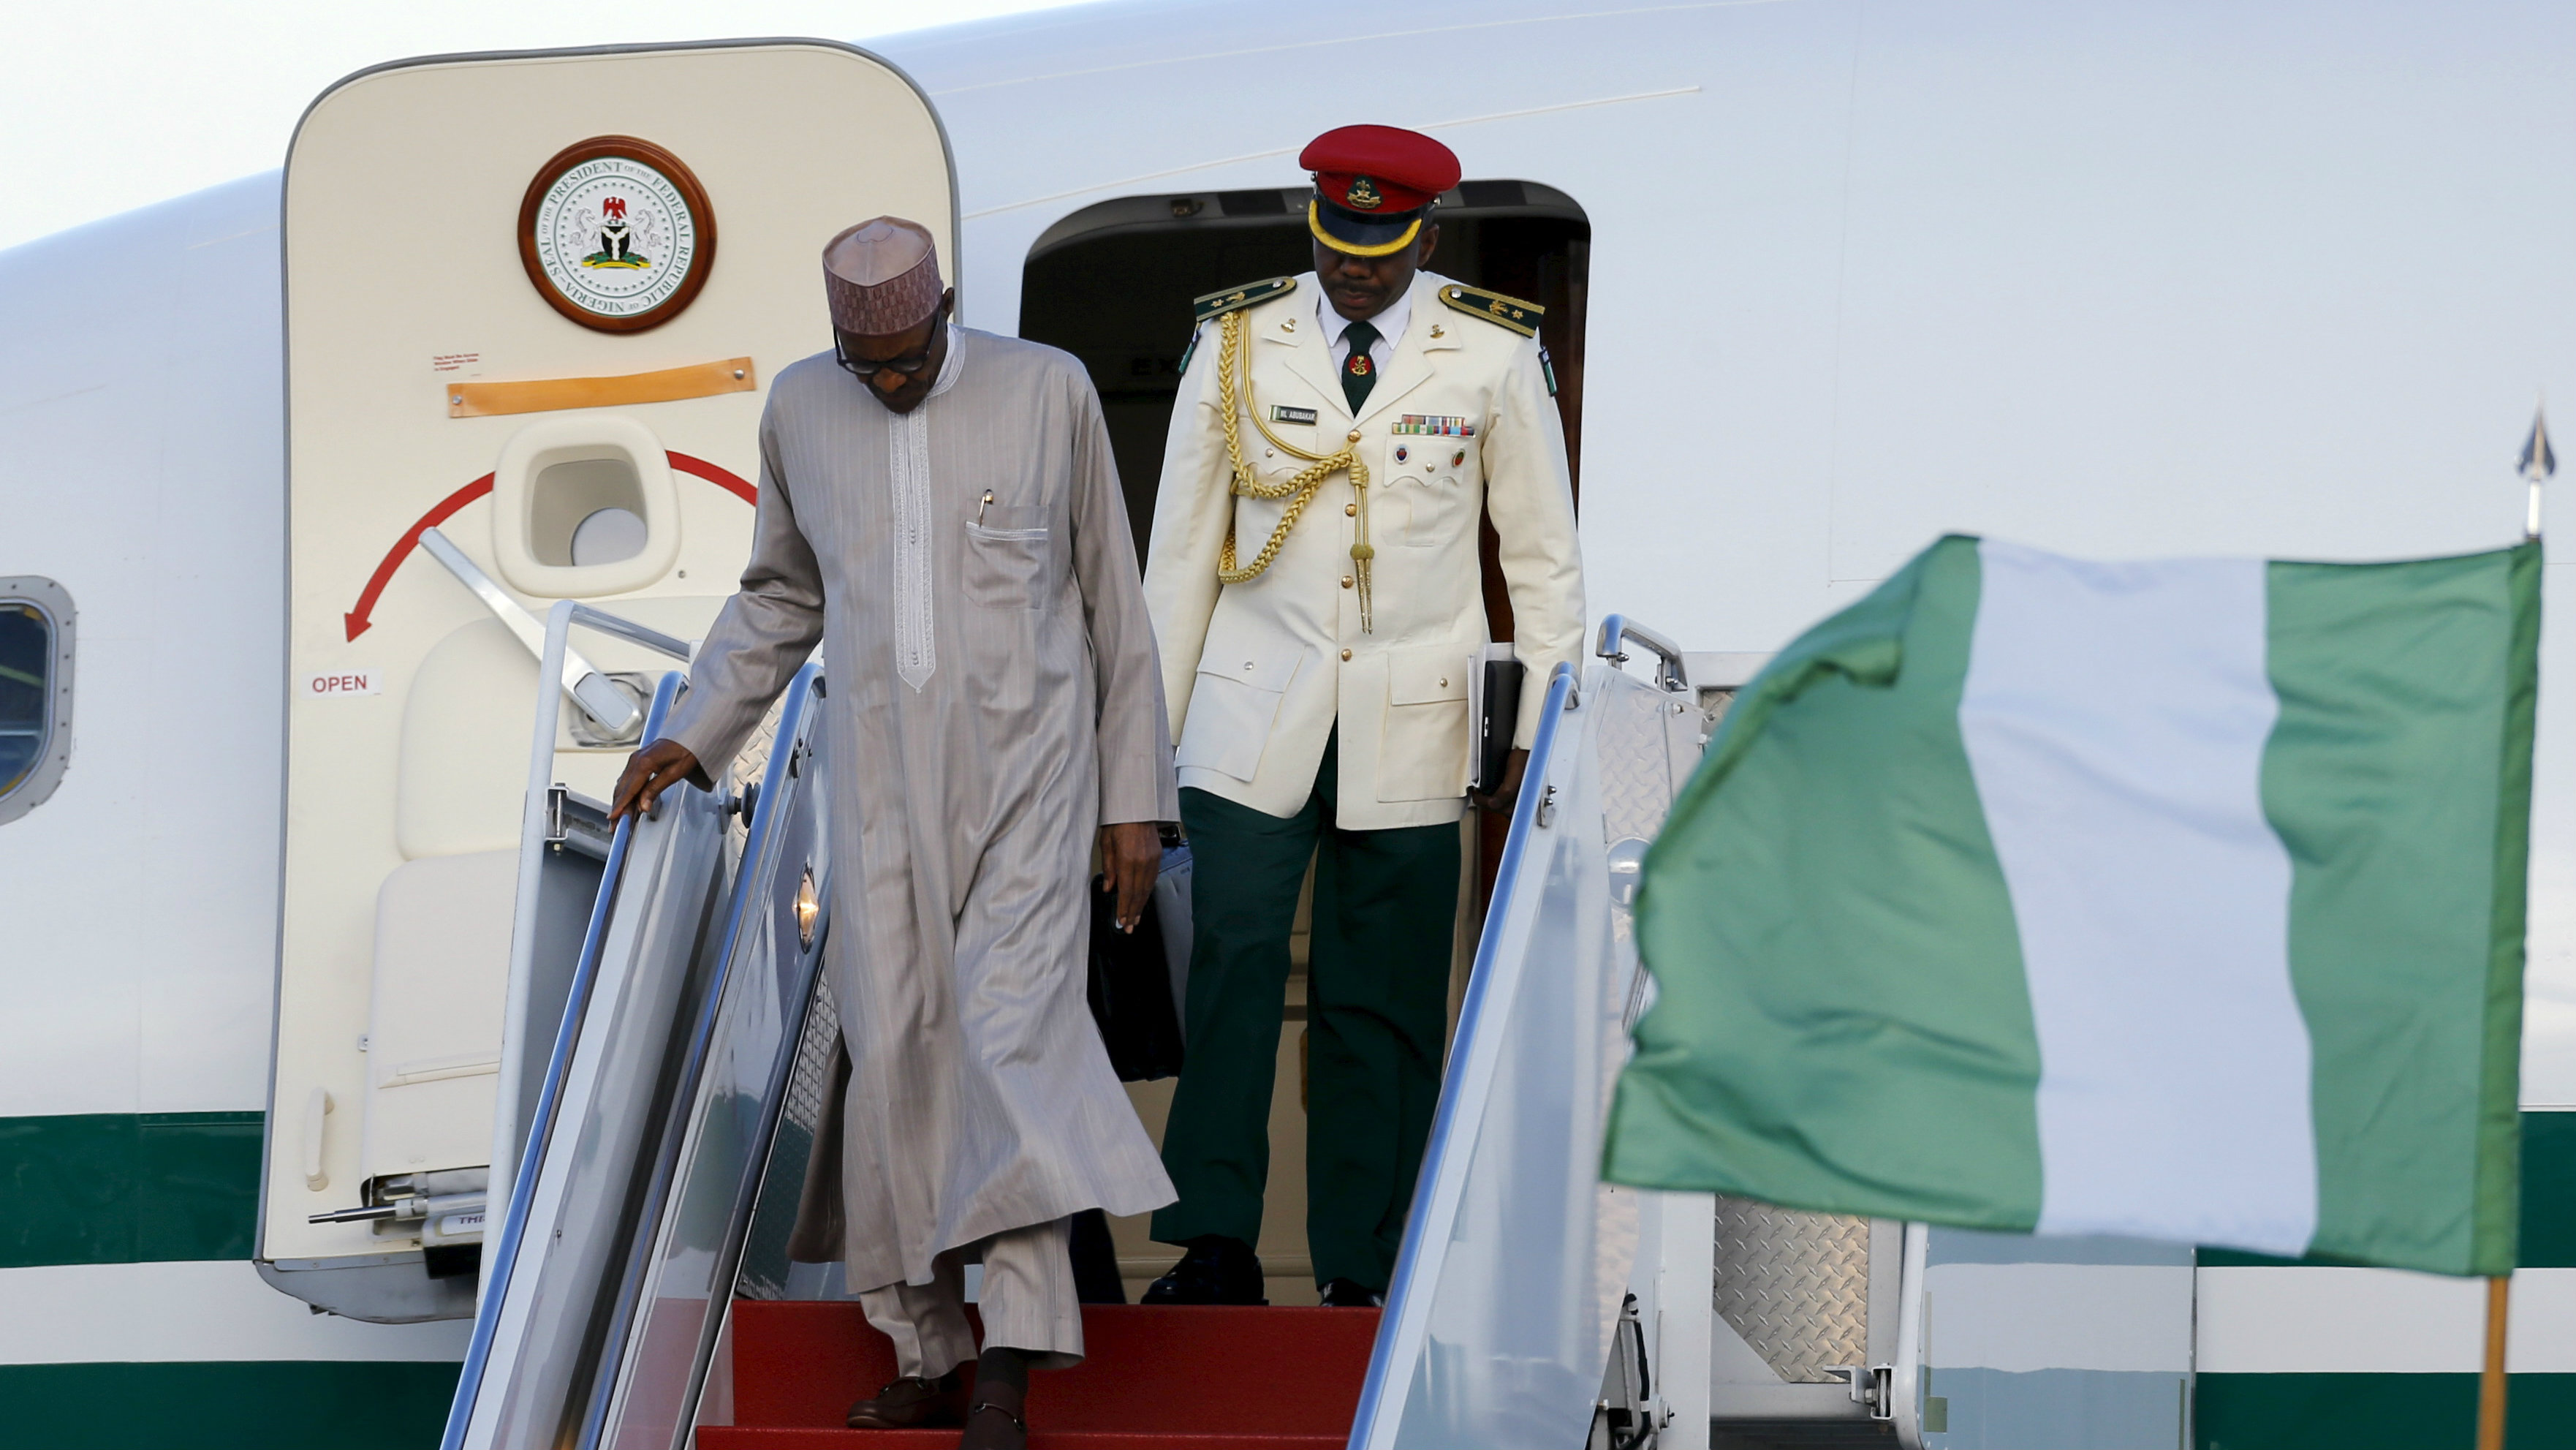 Nigeria's President Muhammadu Buhari (L) arrives on his official plane to attend the upcoming Nuclear Security Summit meetings in Washington, on the tarmac at Joint Base Andrews, Maryland March 30, 2016